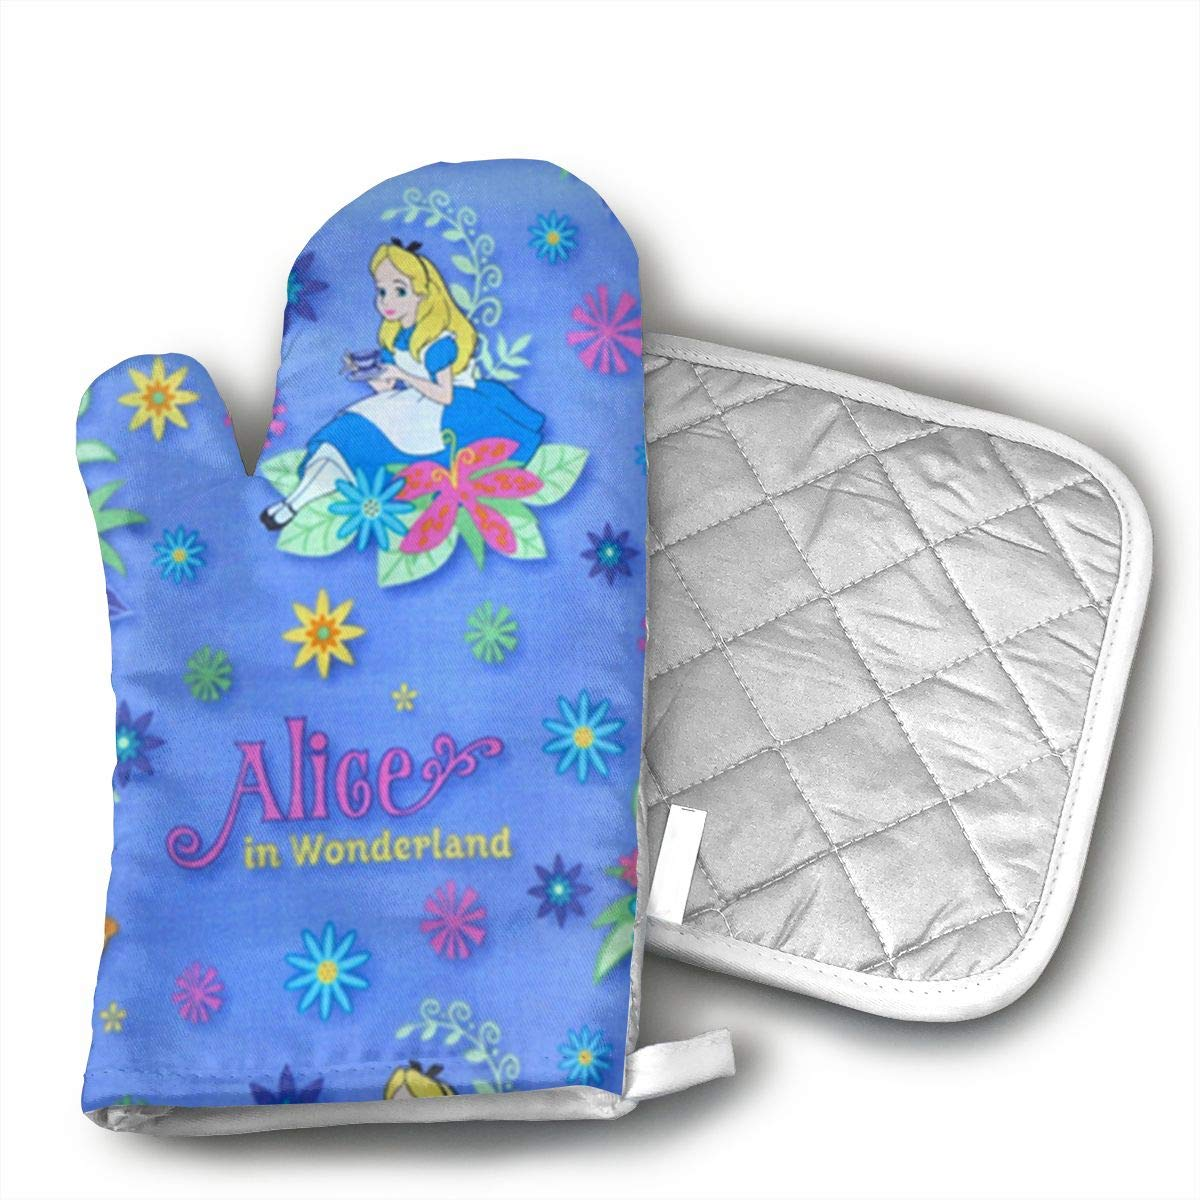 Glovesdkhh Alice in Wonderland Oven Mitts Flame Retardant Mitts Heat Resistant to 425? F 11.8 Inch and Pot Holders